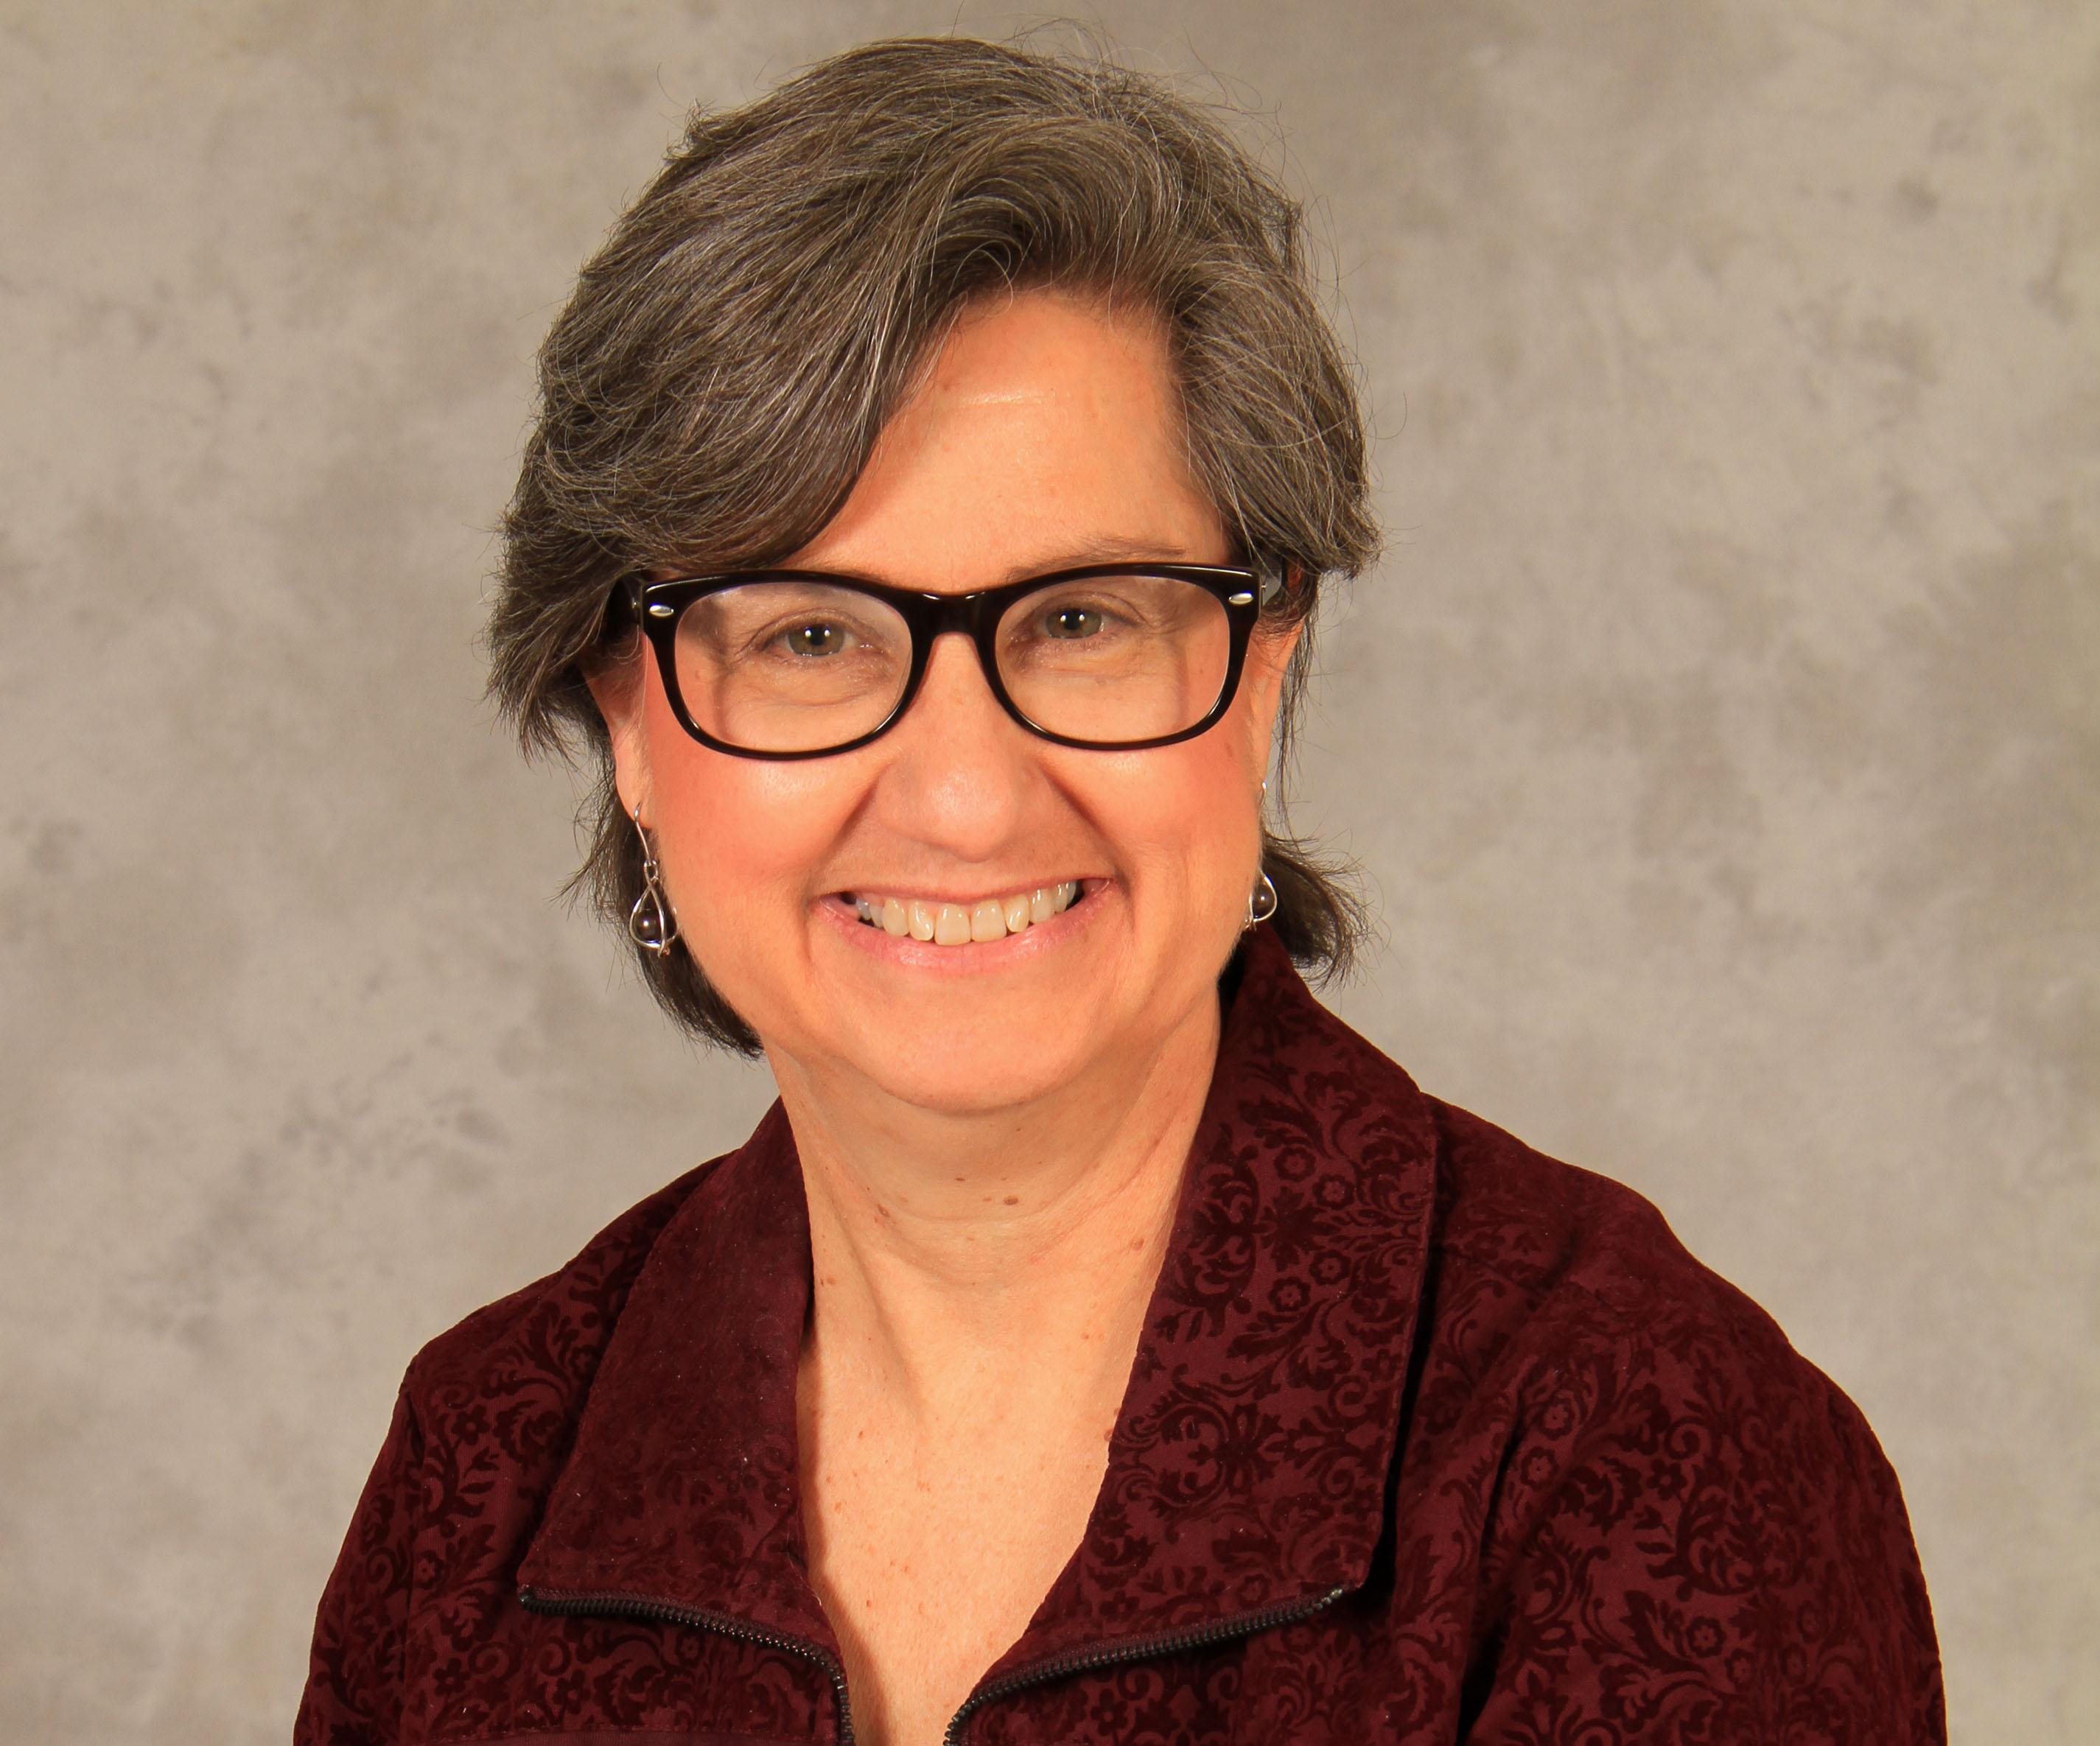 Deborah Furlong, Ph.D., new director of Institutional Research and Assessment at SUNY Oswego